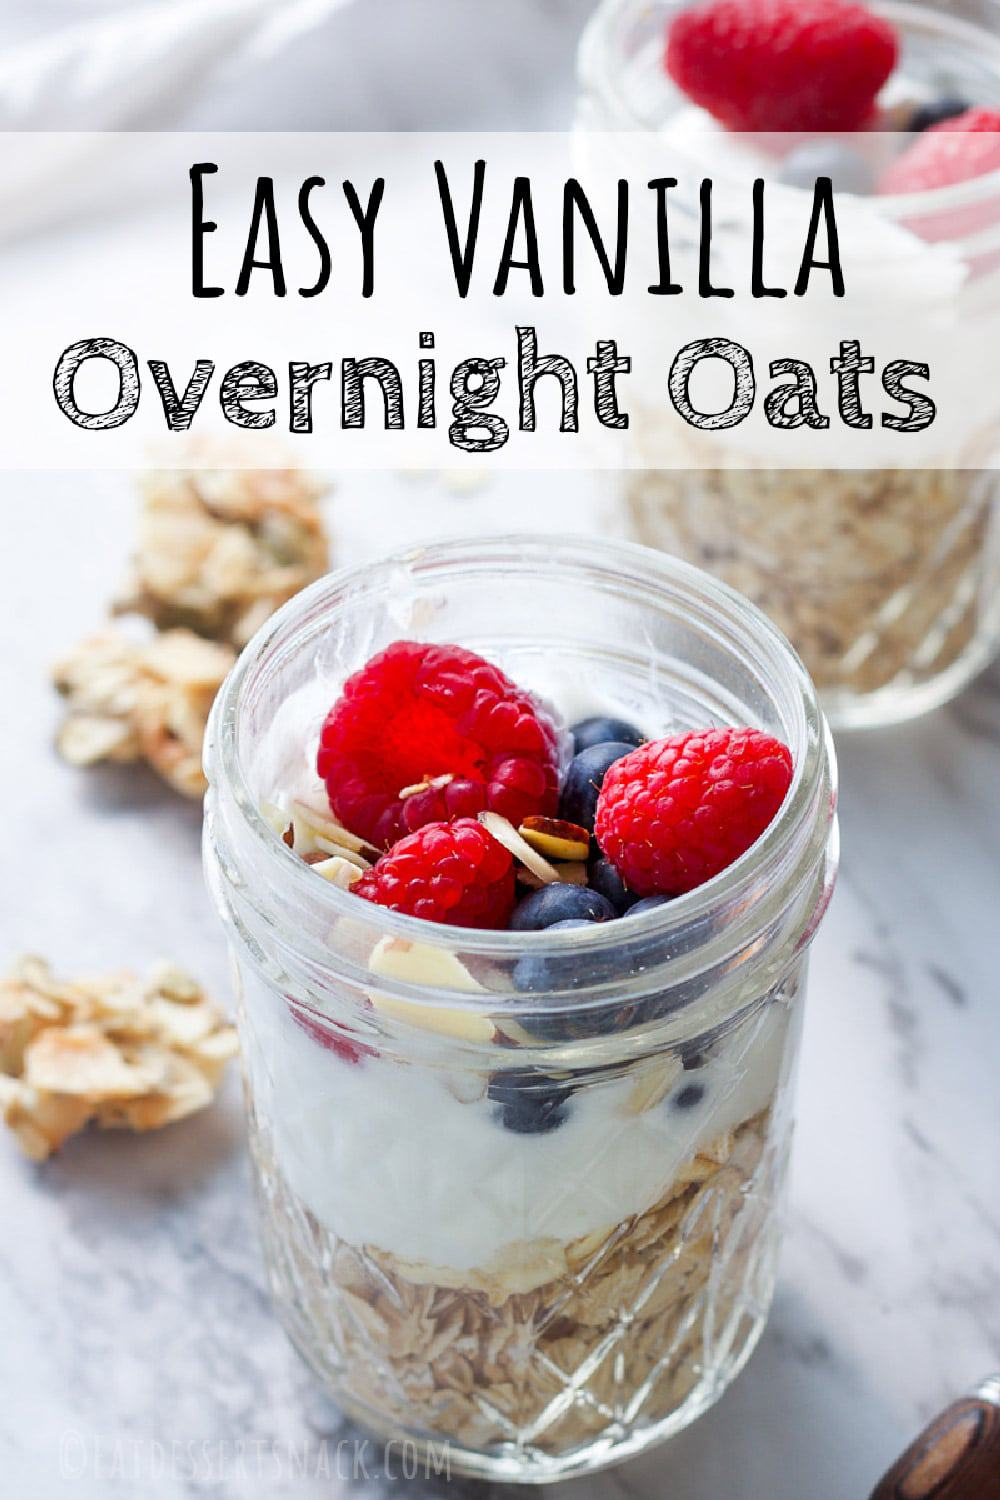 easy overnight oats with raspberries and blueberries in a mason jar on marble countertop with text overlay.